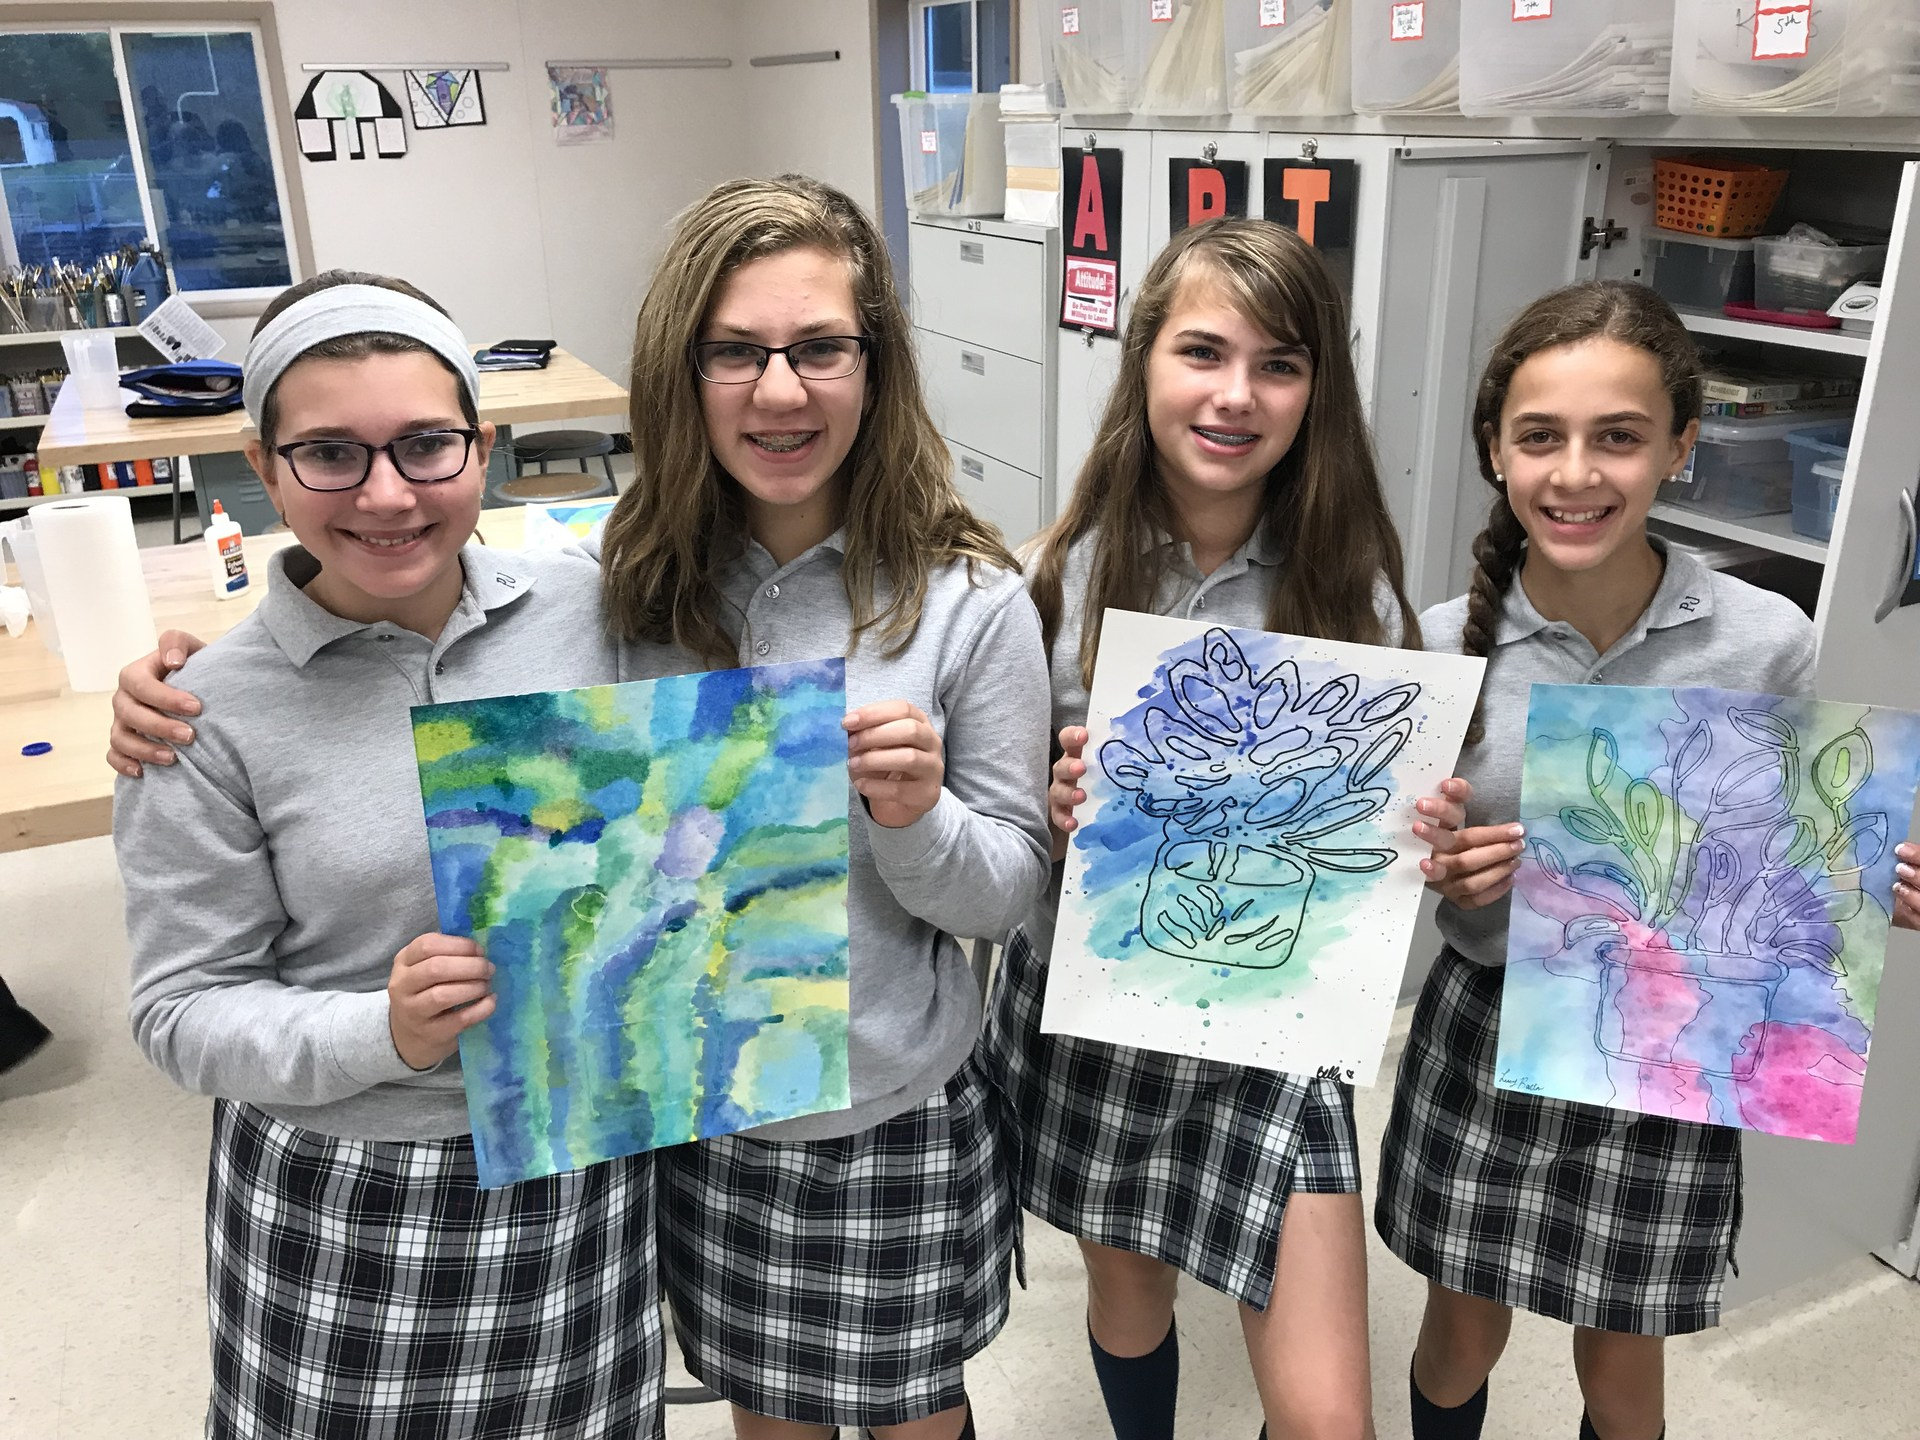 Group of girl students pose with paintings